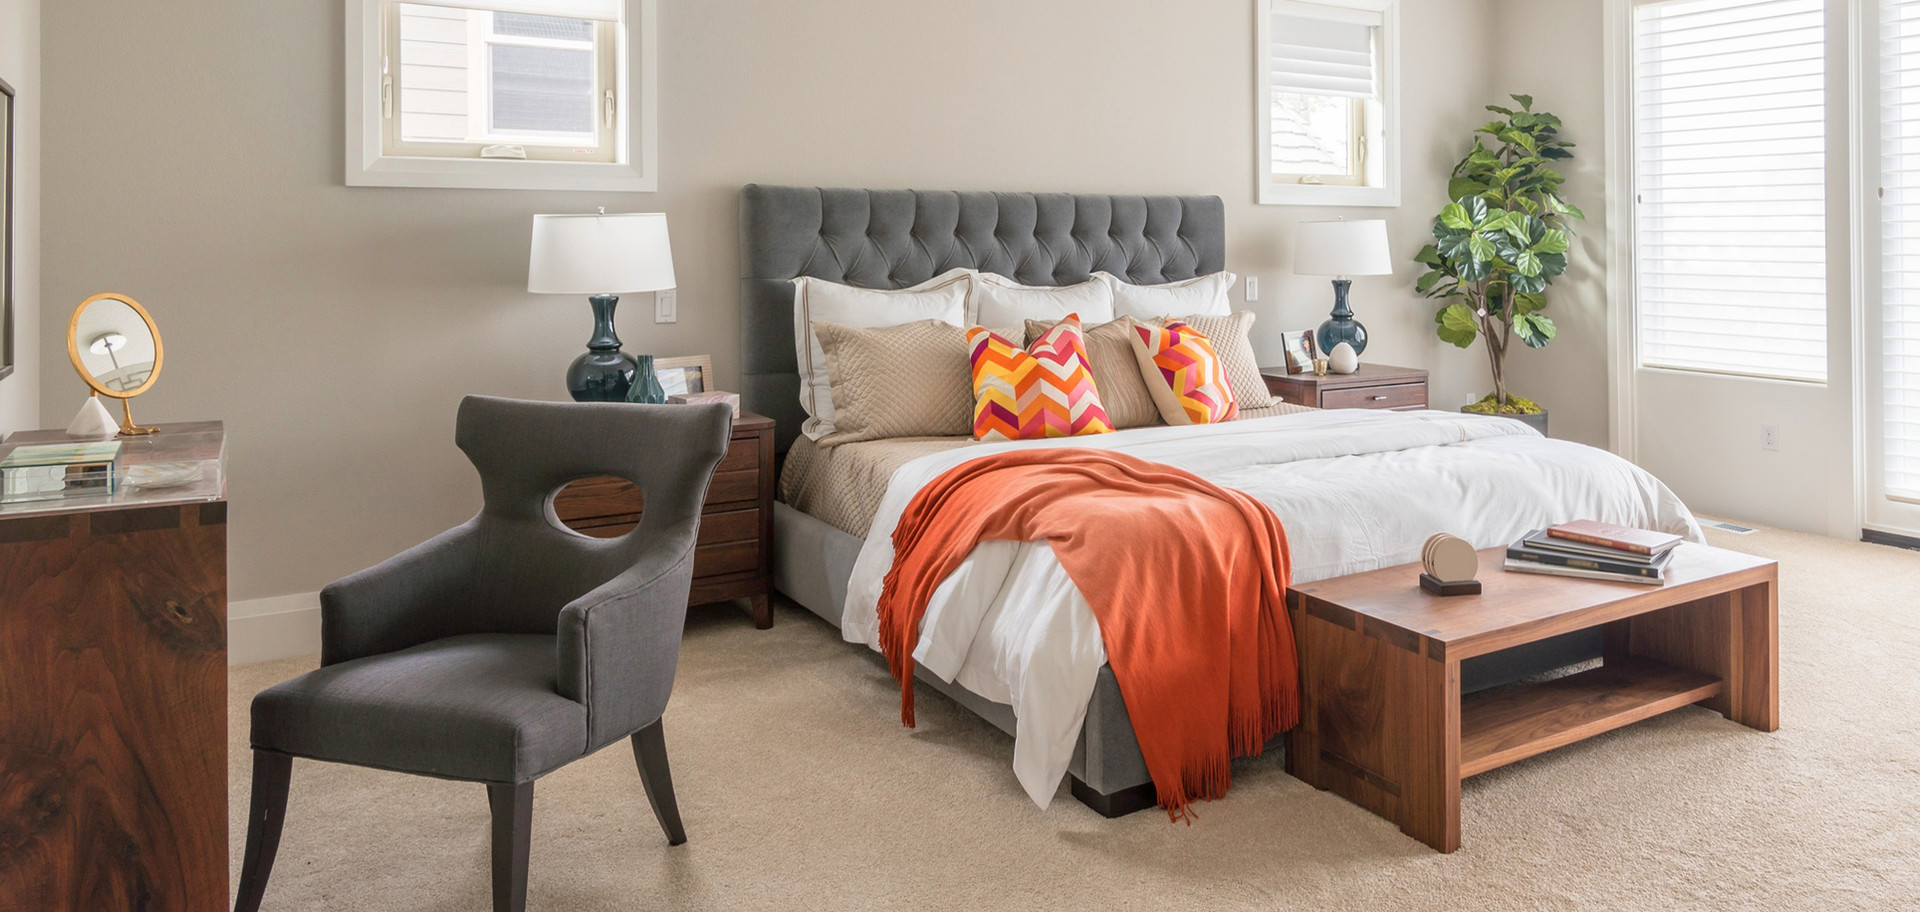 Bedroom with side table and bedhead, Autumn coloured throws of burnt orange.jpg